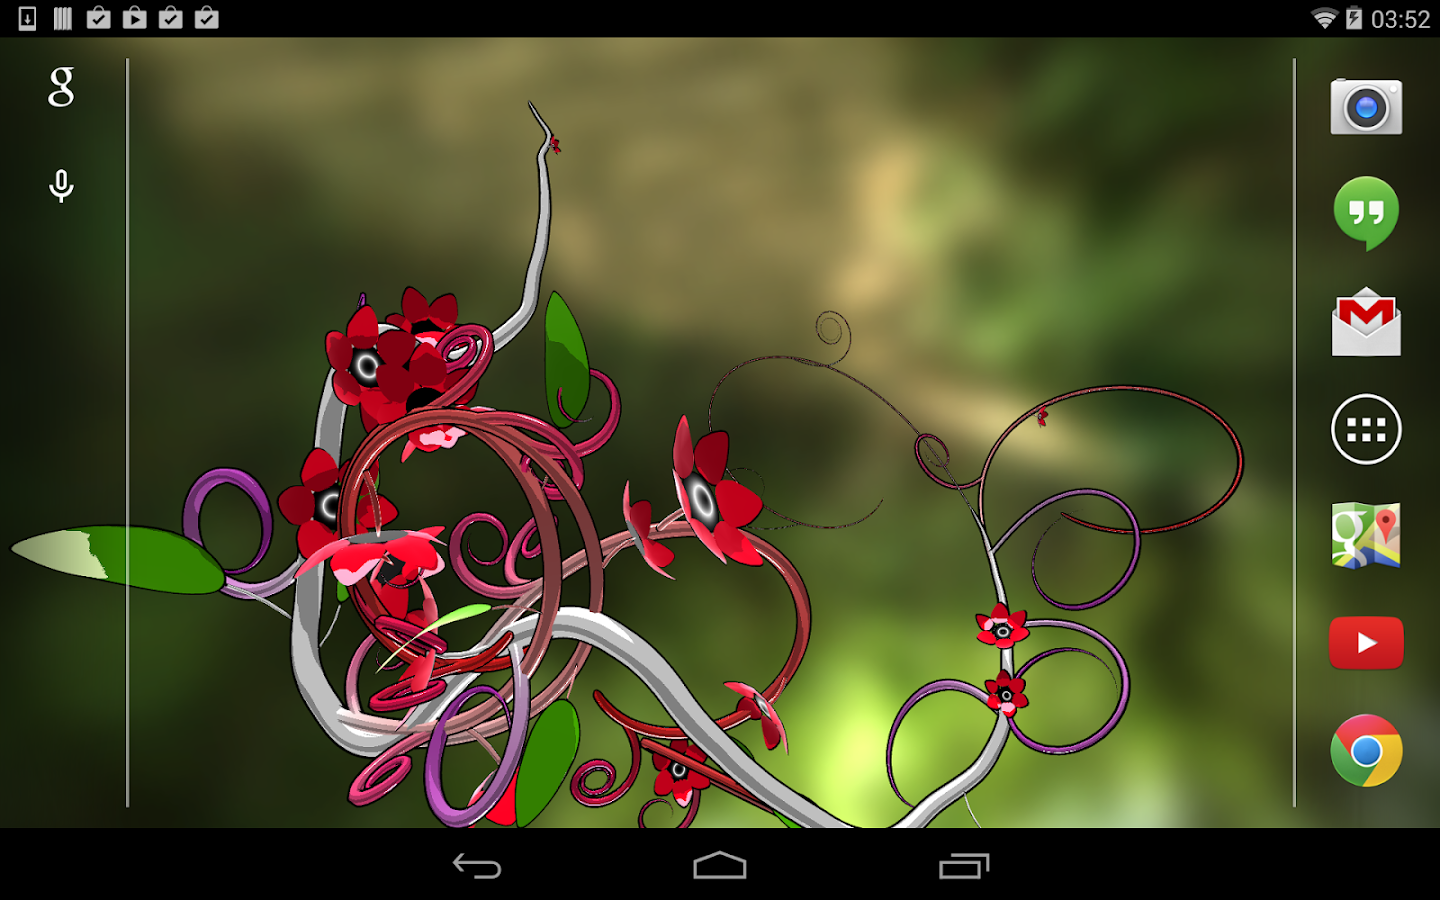 Jungle of Flowers 3D LWP- screenshot